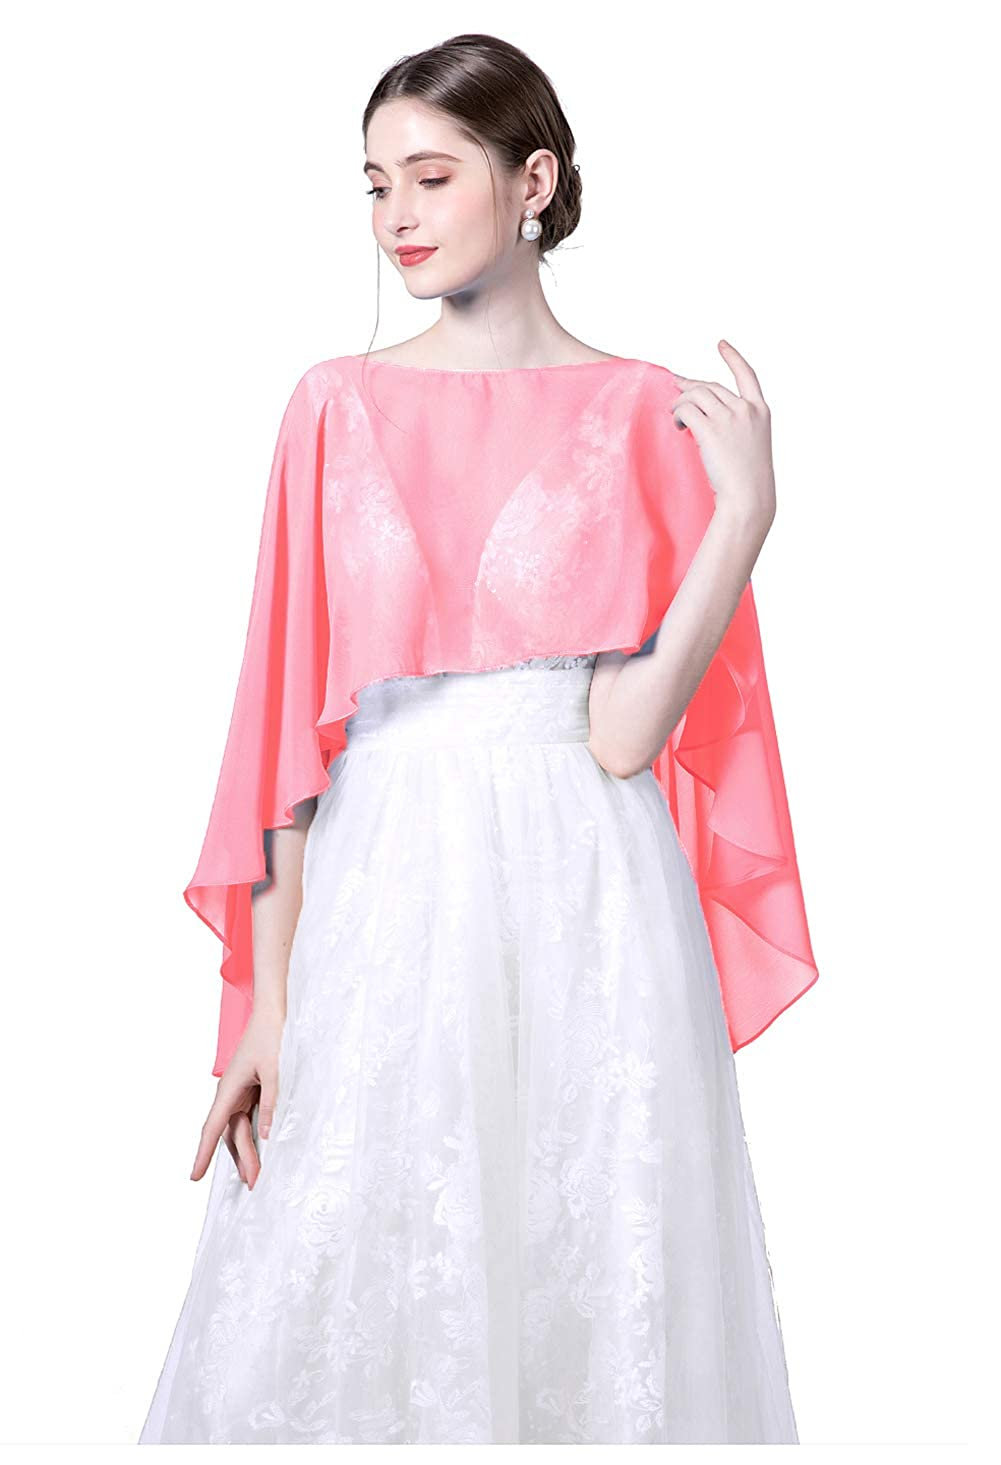 Wedding Capes Womens Soft Chiffon Cape Shawls and Wraps Shrugs For Evening dresses